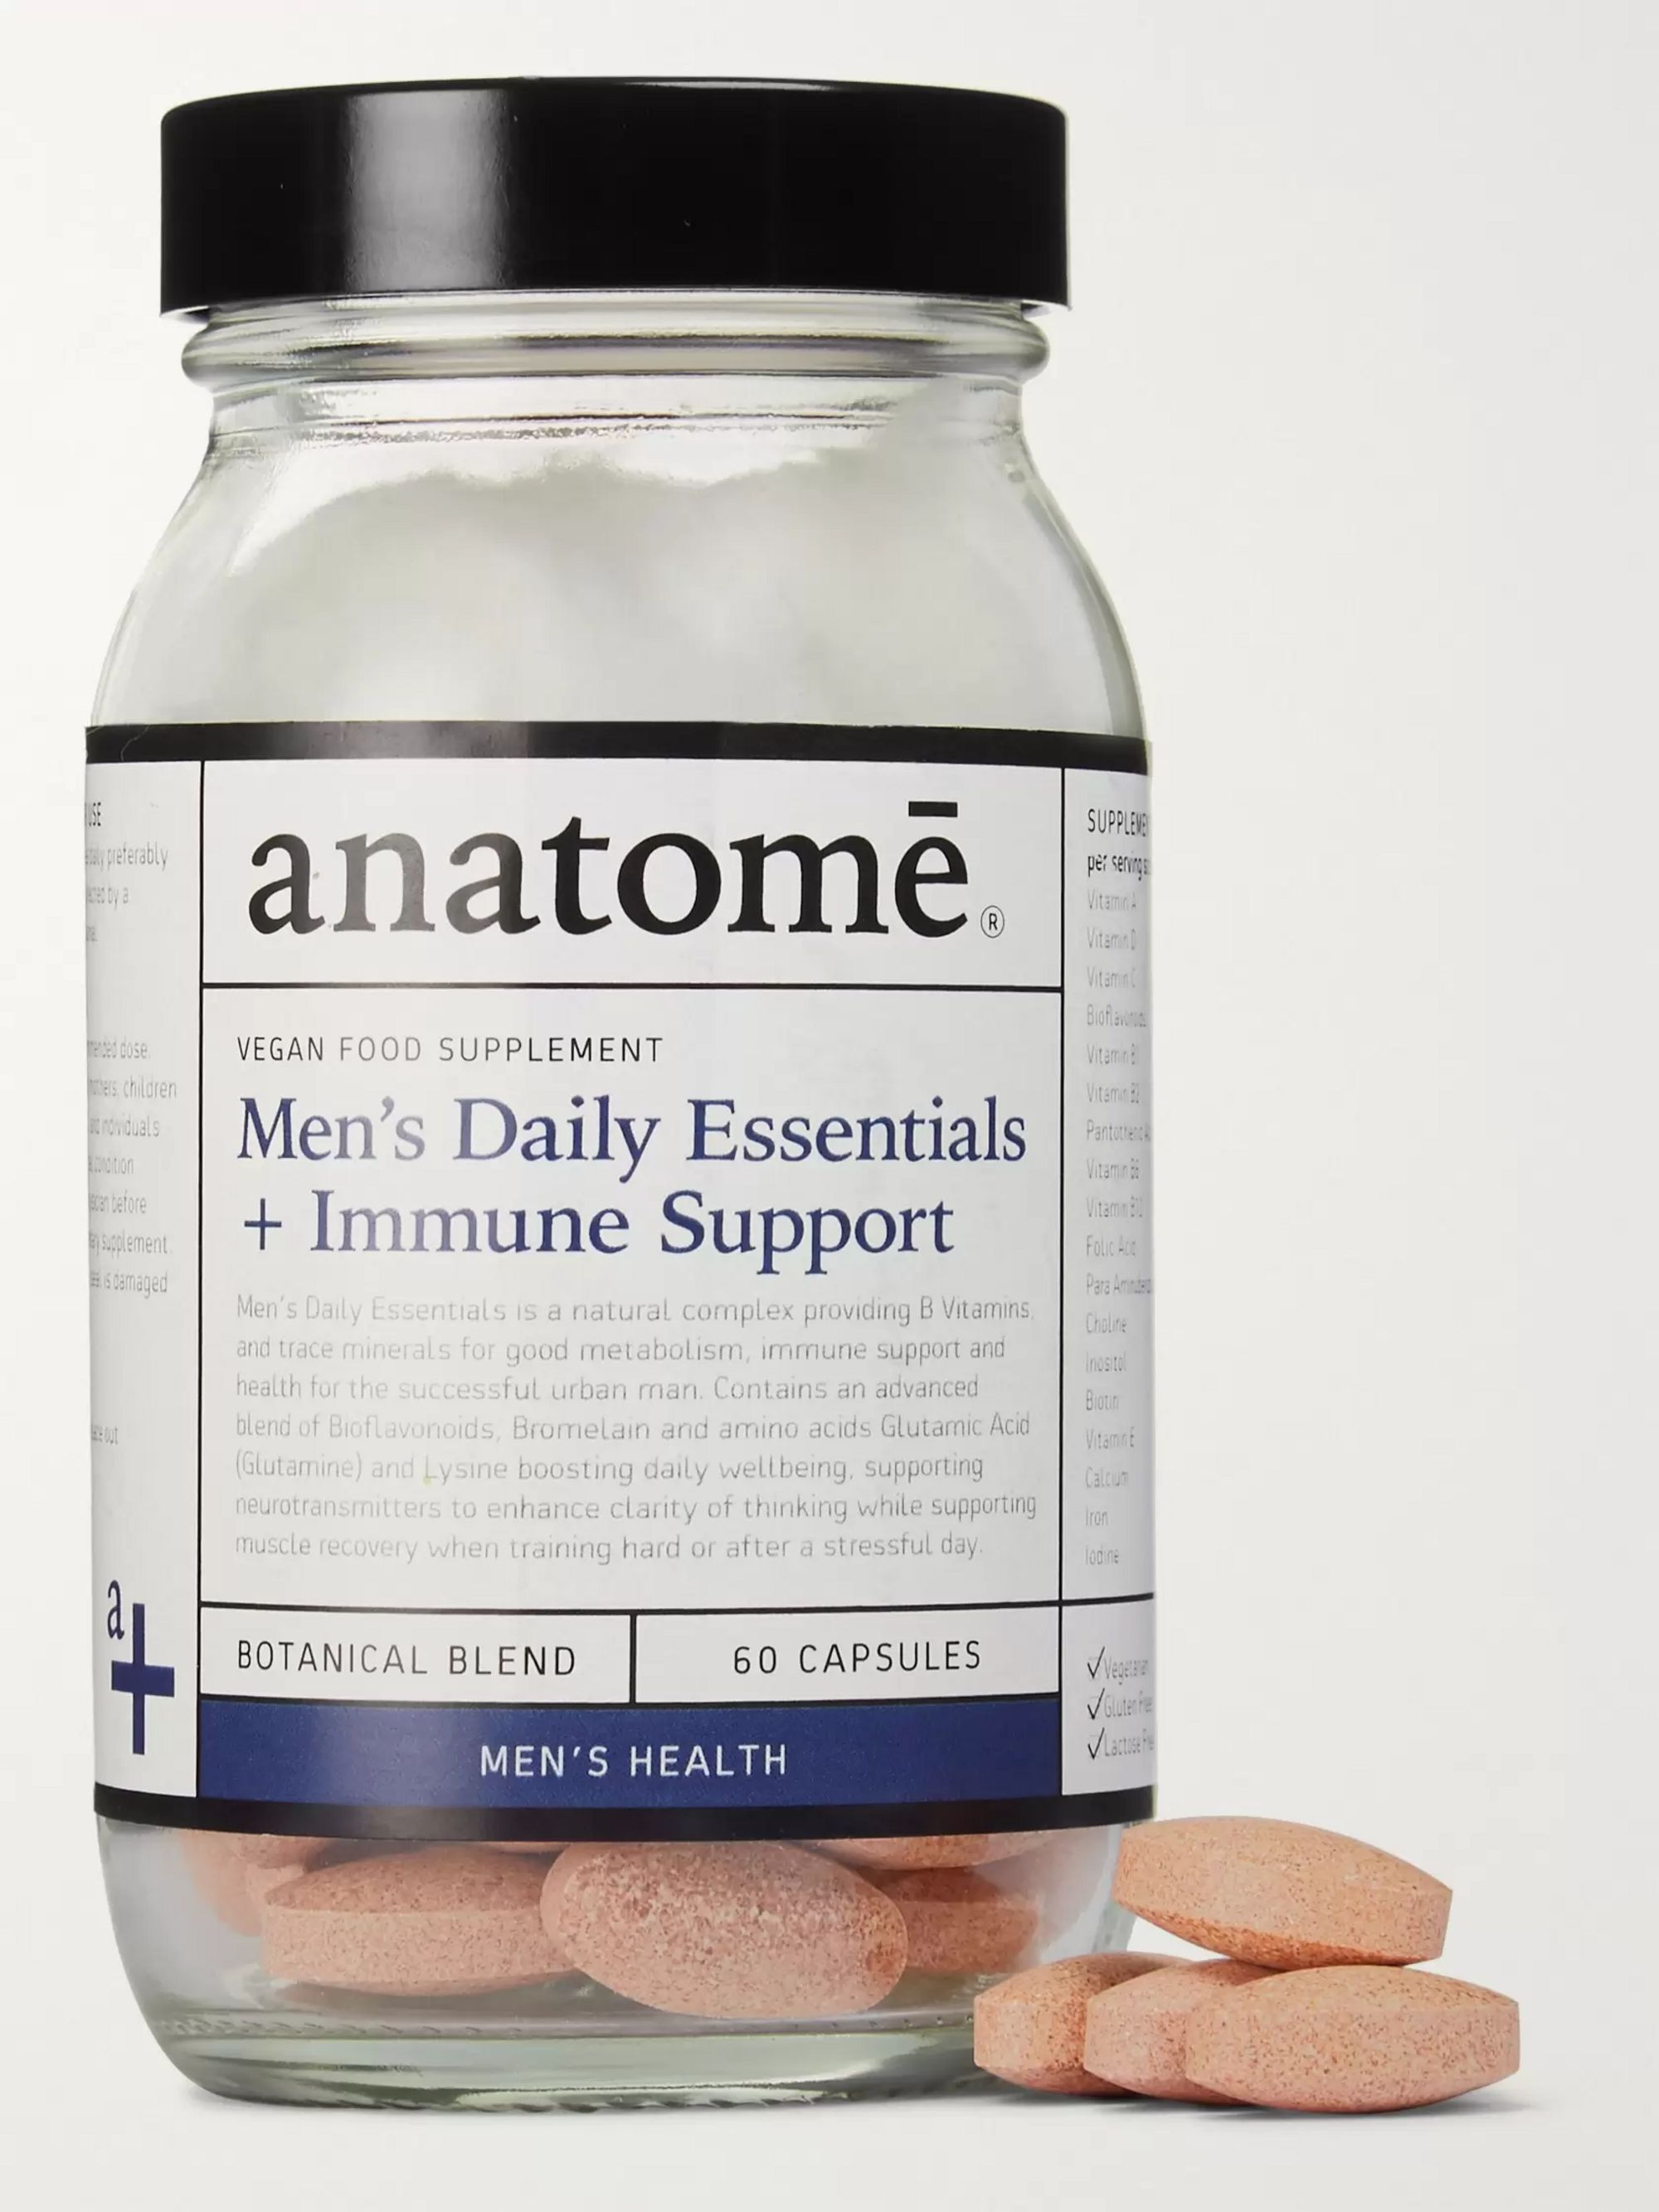 anatomē Men's Daily Essentials + Wellbeing Support Supplement, 60 Tablets